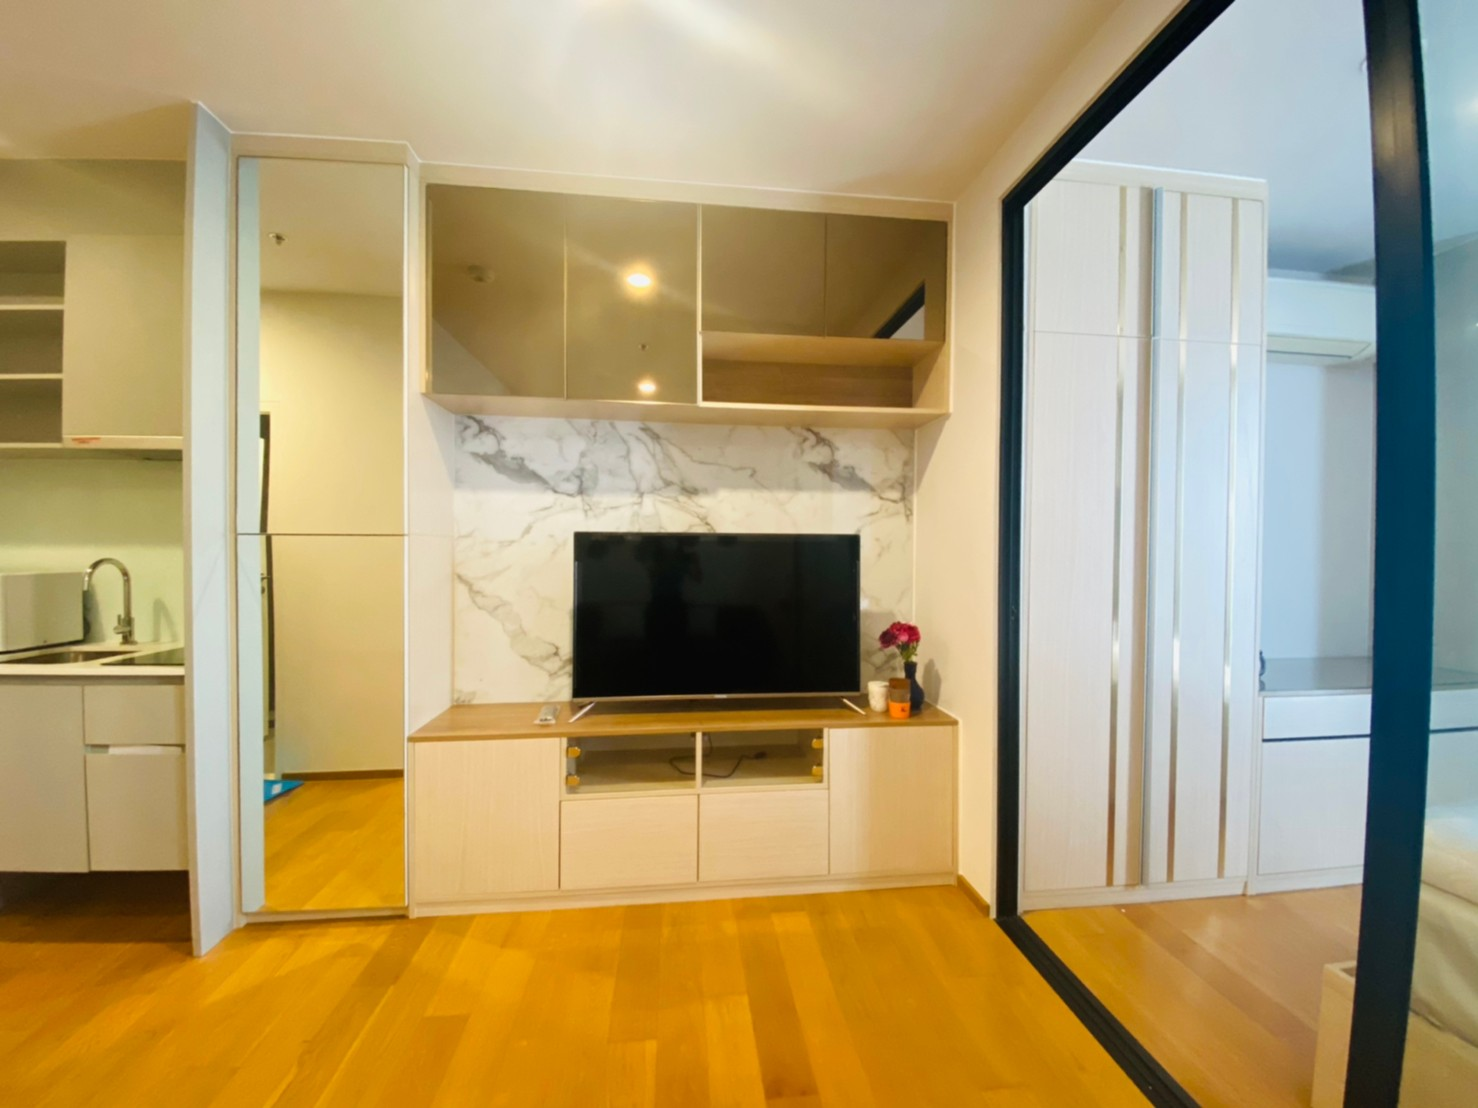 NOBLE REVO SILOM – BTS Surasak 160 meters – Unit 34 Sq.m